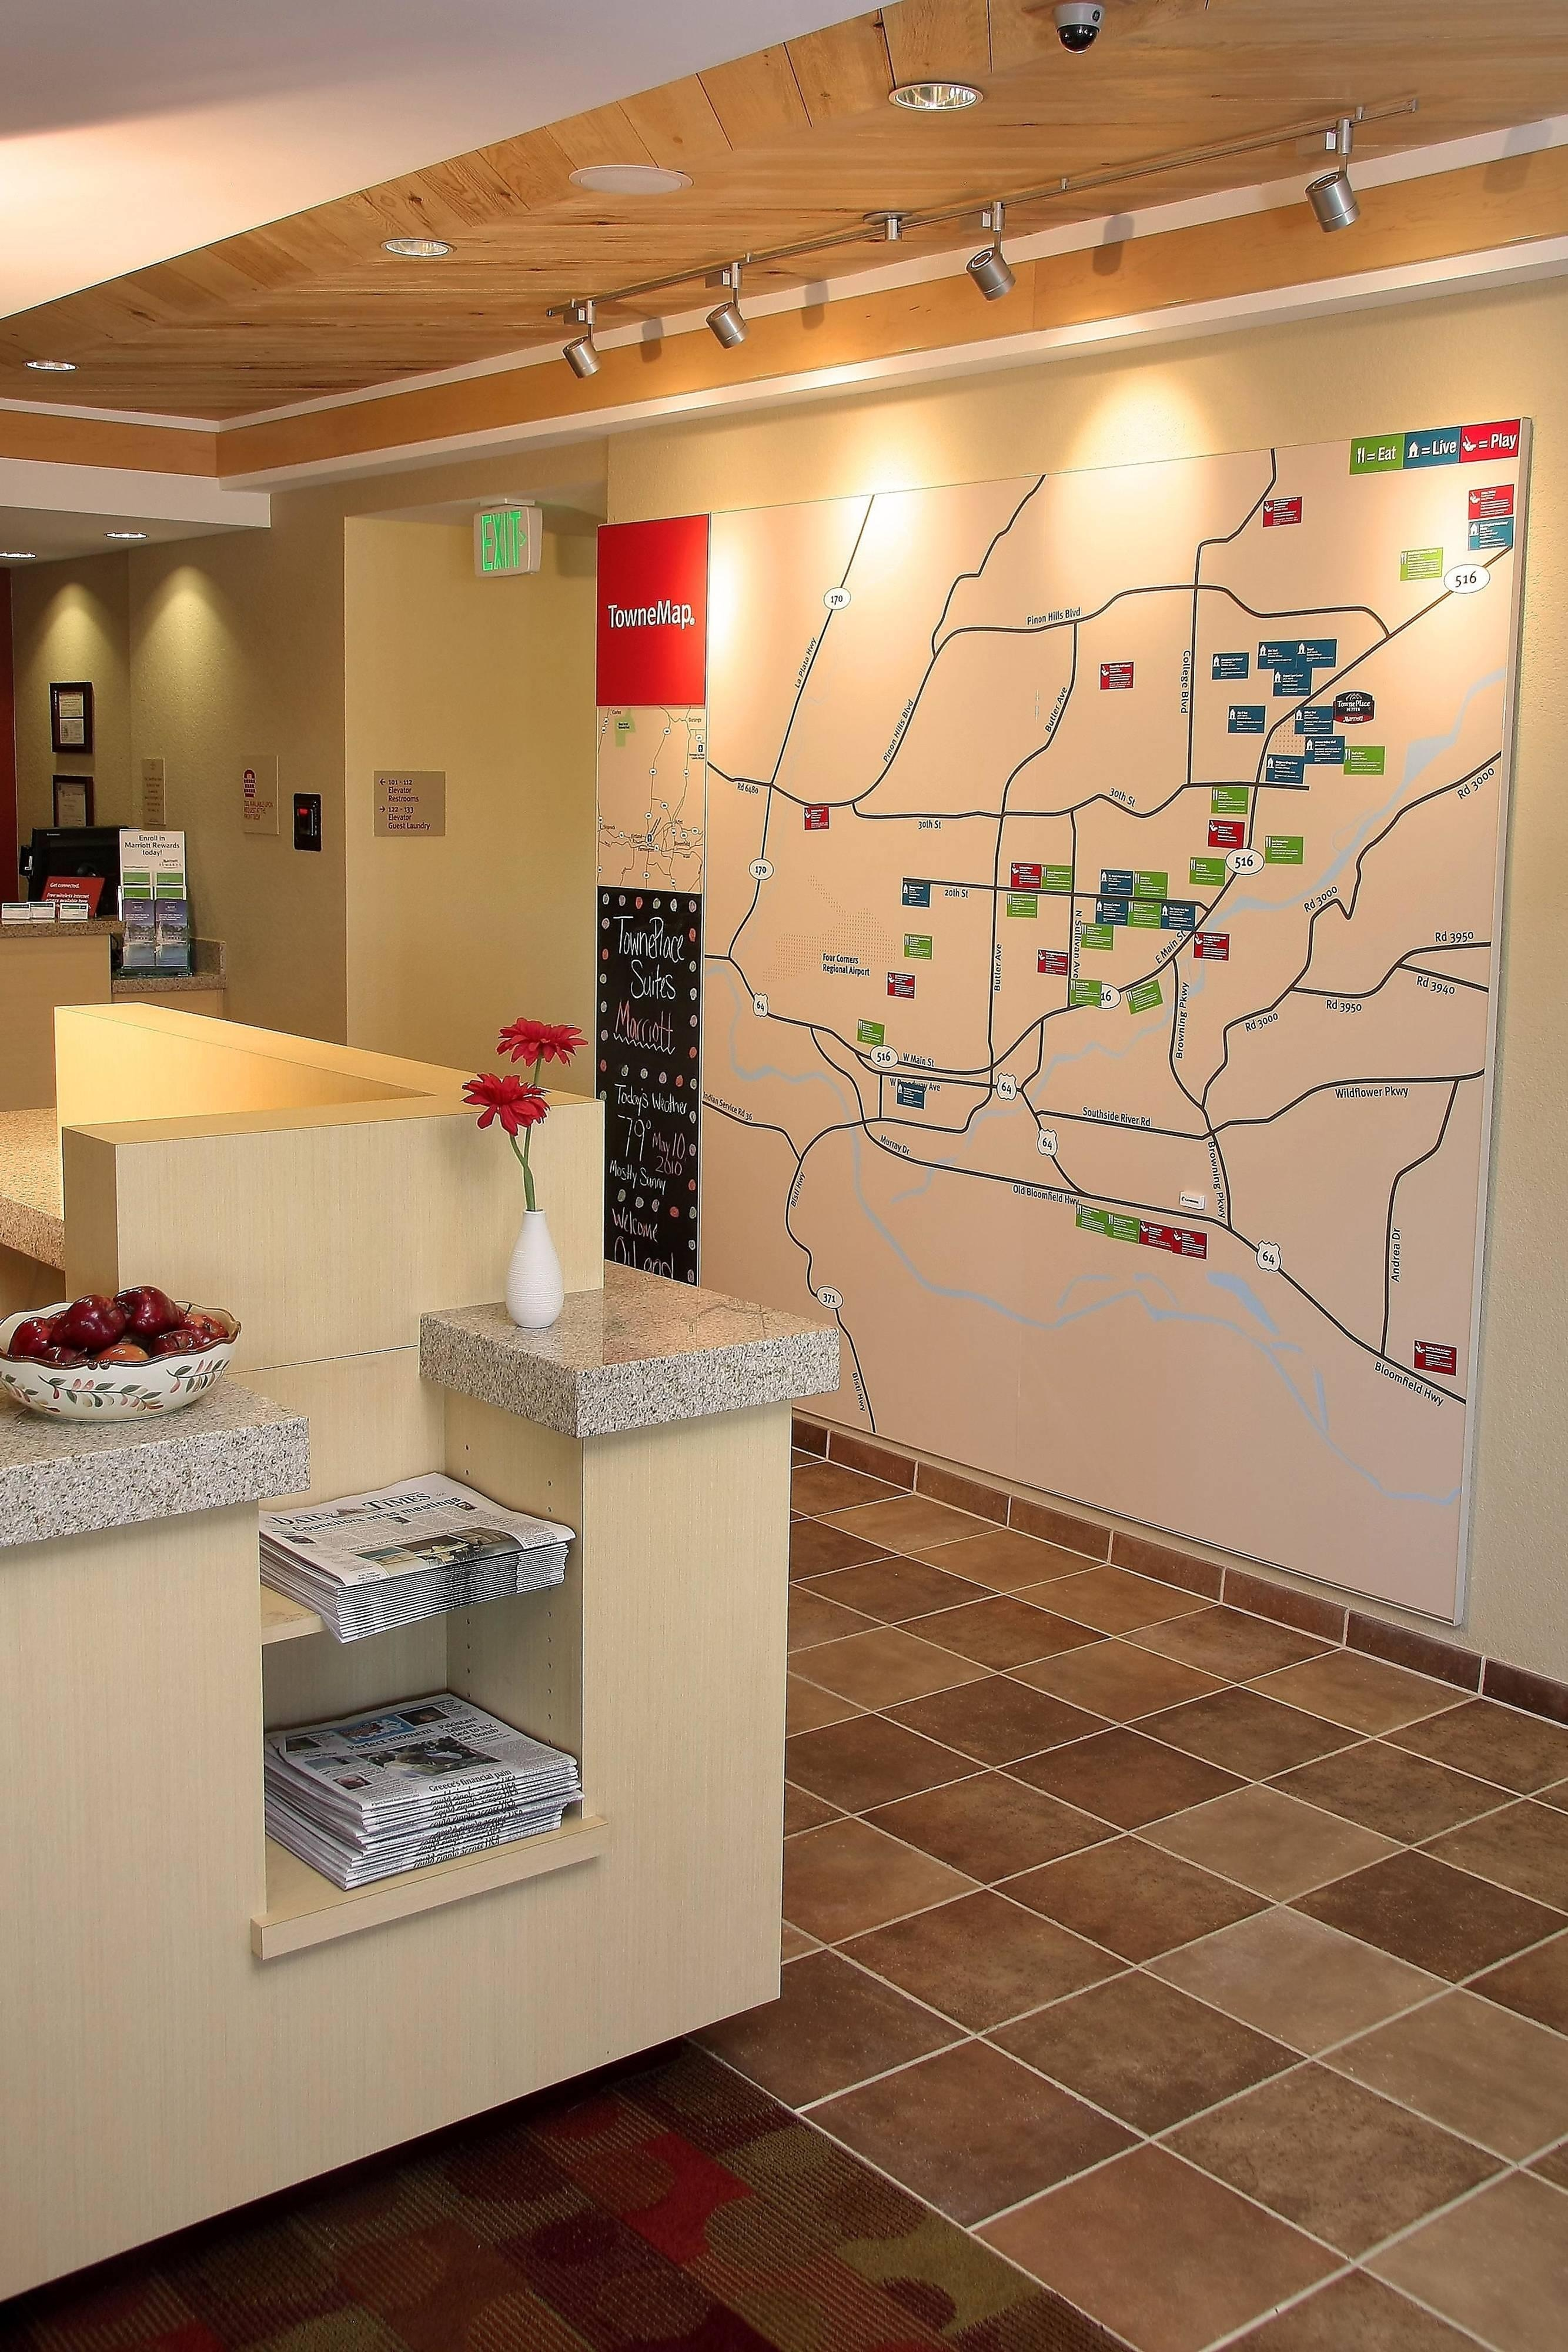 Farmington TownePlace Suites Hotel TowneMap